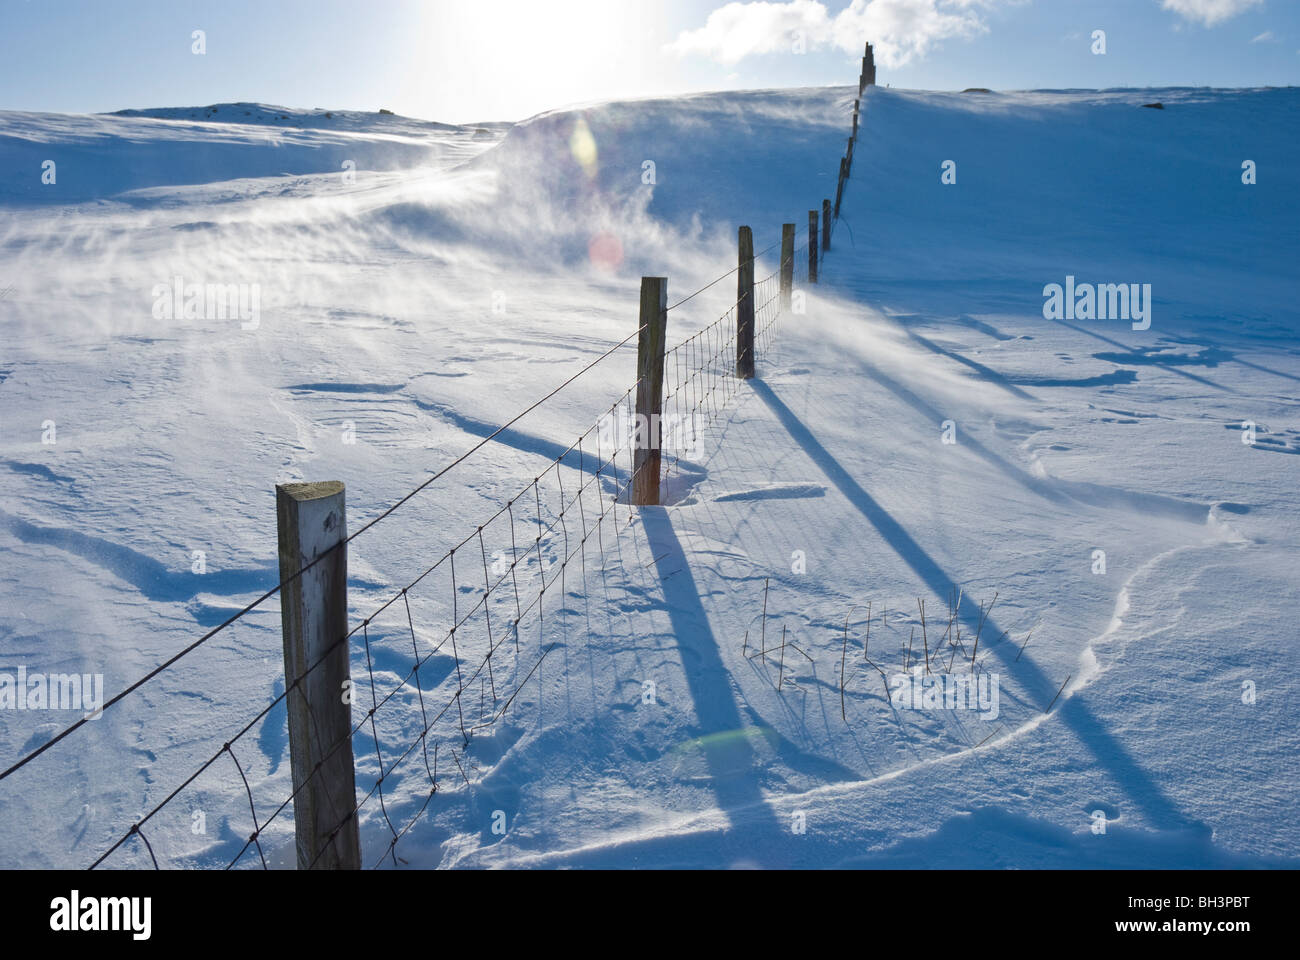 Crossing Fence Stock Photos & Crossing Fence Stock Images - Alamy